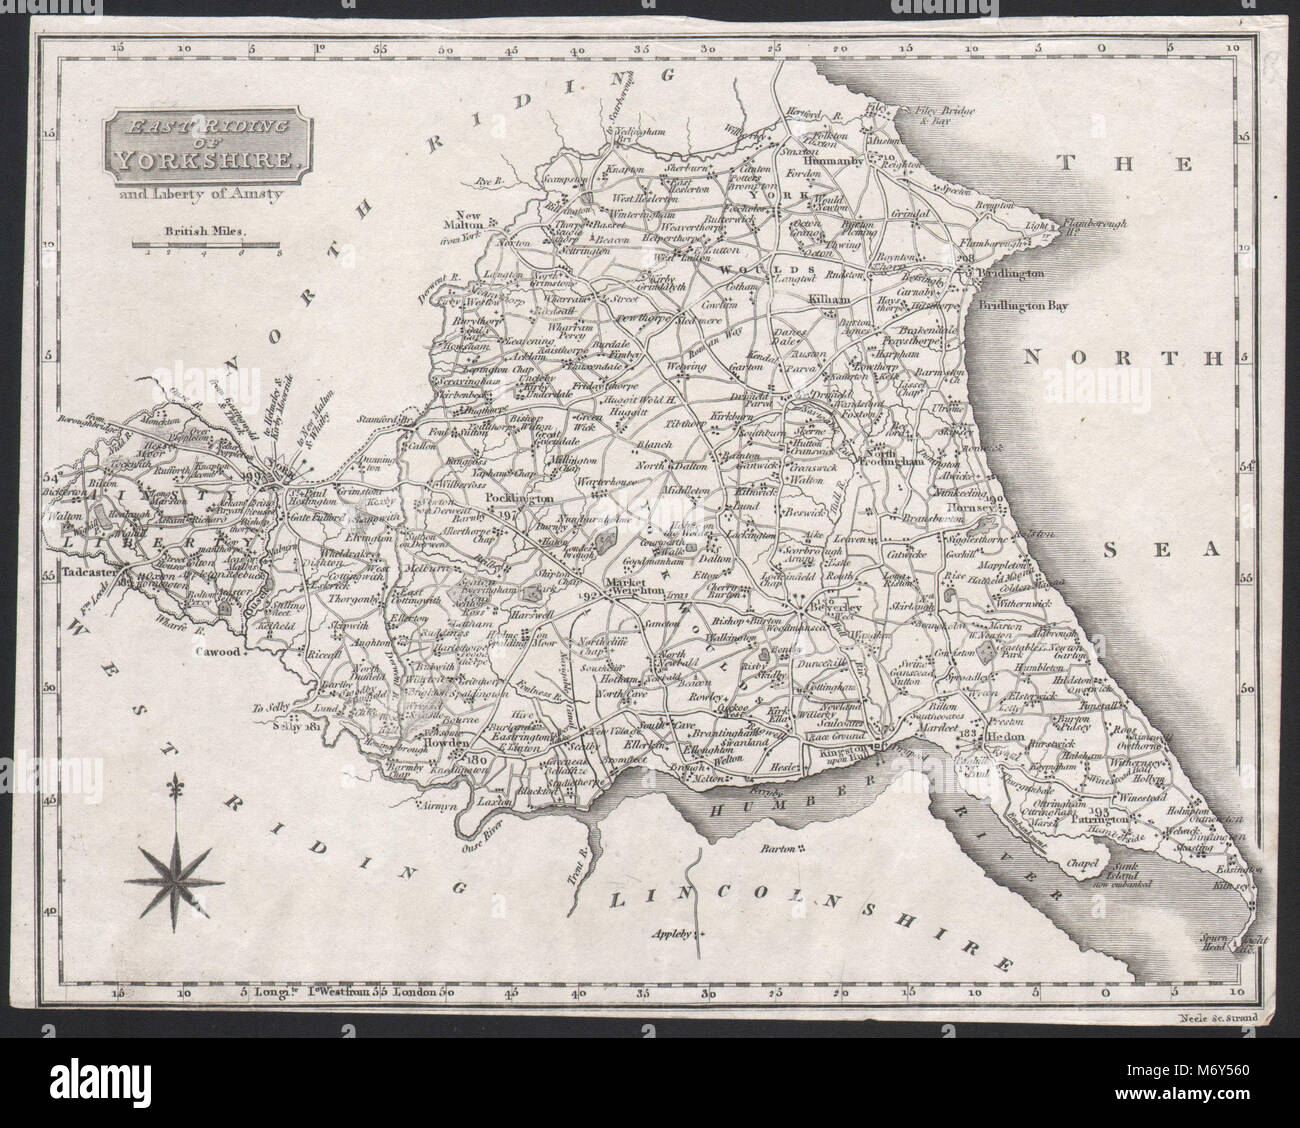 East Riding of Yorkshire and Liberty of Ainsty. Trimmed. NEELE c1818 old map - Stock Image